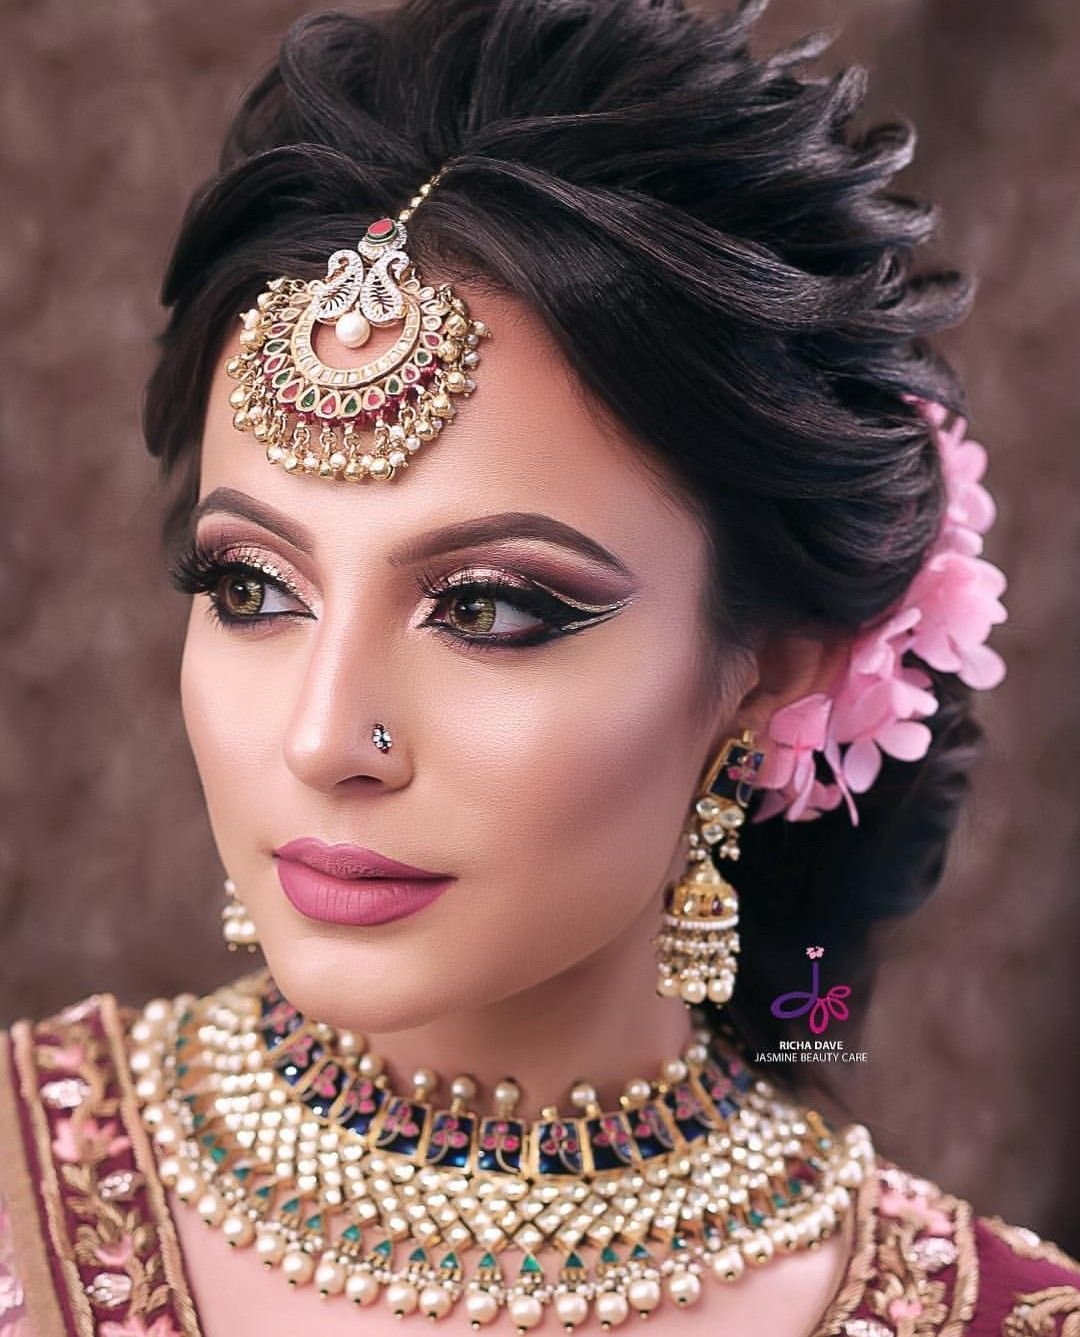 New Shikachand The Indian Wedding Fairytale In 2019 Bridal Hairstyle Indian Wedding Indian Ideas With Pictures